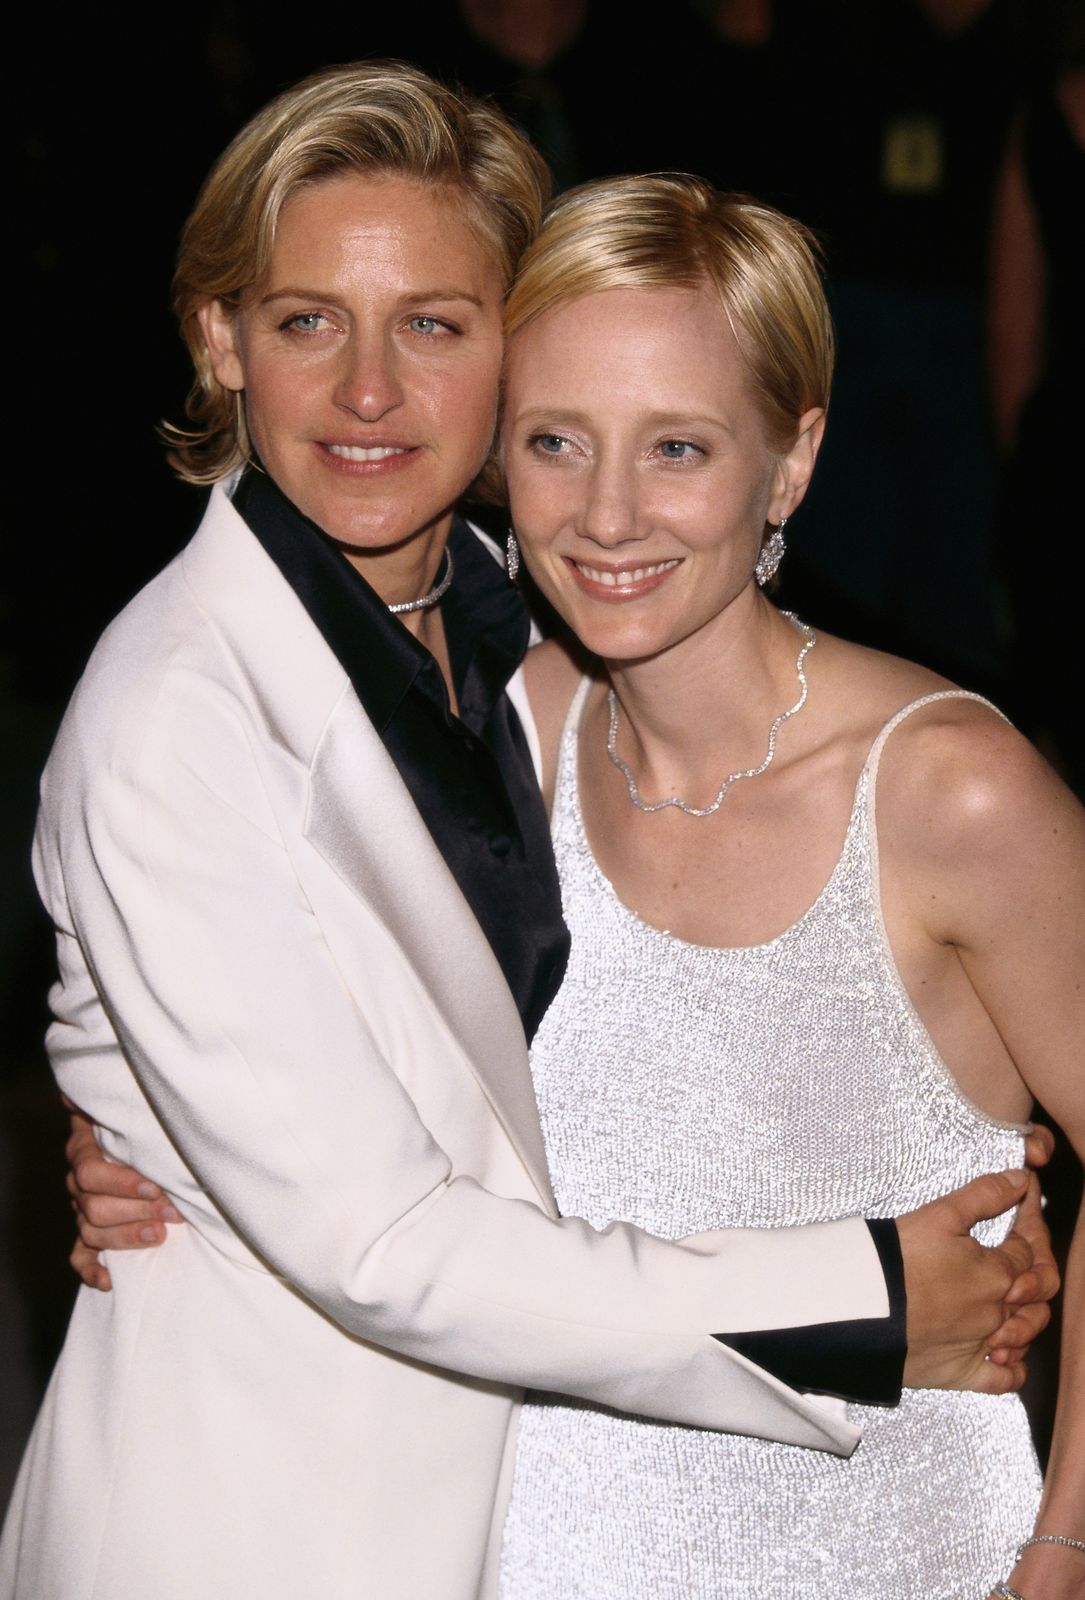 Ellen DeGeneres and Anne Heche at the 71st Annual Academy Awards - Elton John AIDS Foundation Party, 1999   Photo: Getty Images